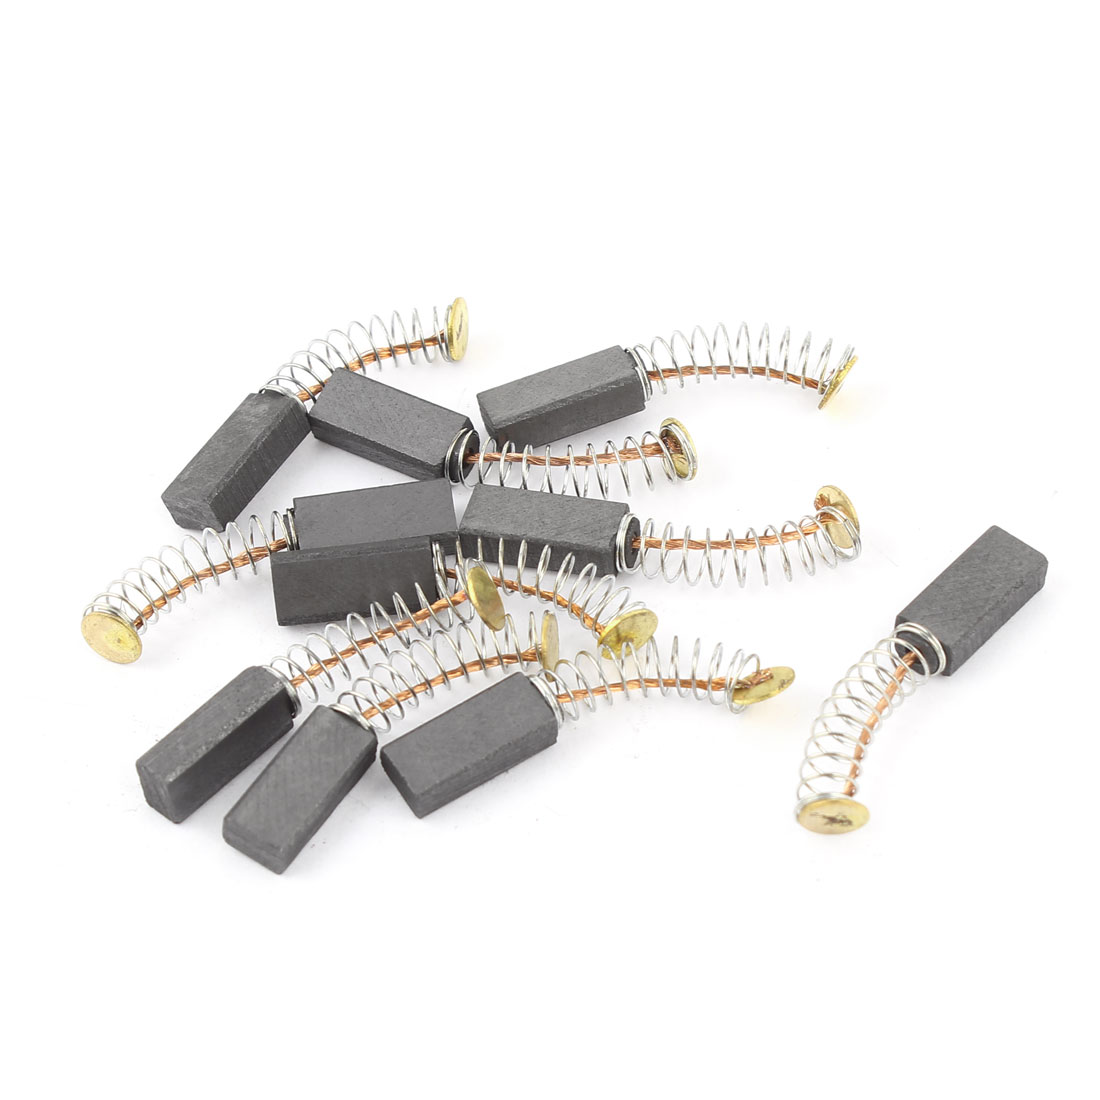 Dmiotech 10 Pcs Electric Drill Motor Carbon Brushes . | 10mm | 12mm | 17mm | 4mm | 5mm | 6.5mm | 6mm | 7.5mm | 8mm | 9mm dmiotech 20 pcs replacement electric motor carbon brushes for motors 11mm 12 5mm 13mm 16mm 17mm 6 5mm 6mm 7mm